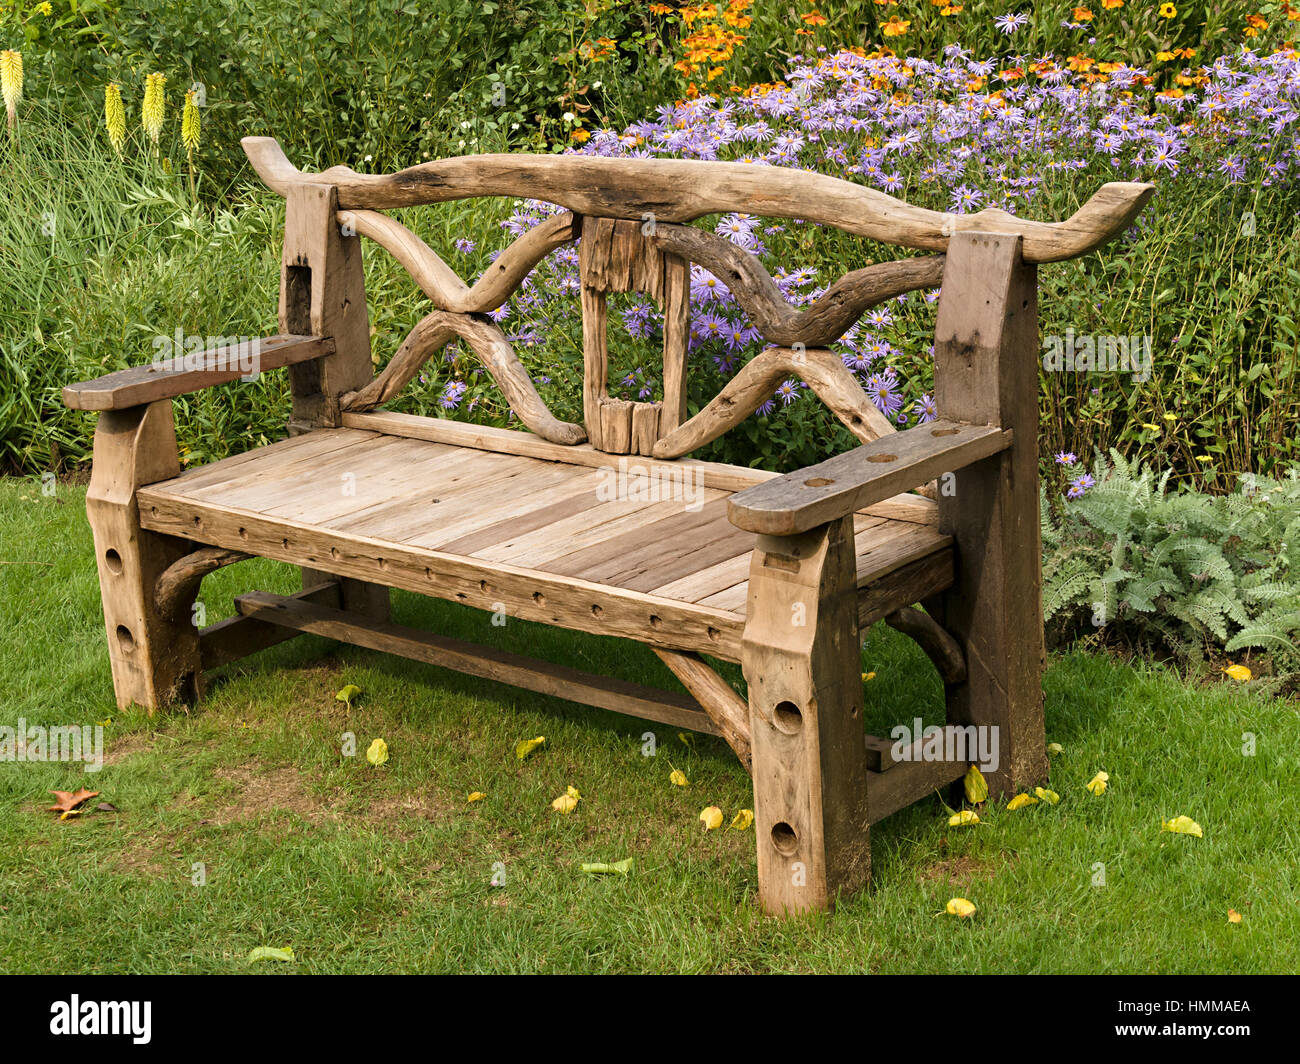 ornate rustic wooden garden bench seat made from. Black Bedroom Furniture Sets. Home Design Ideas